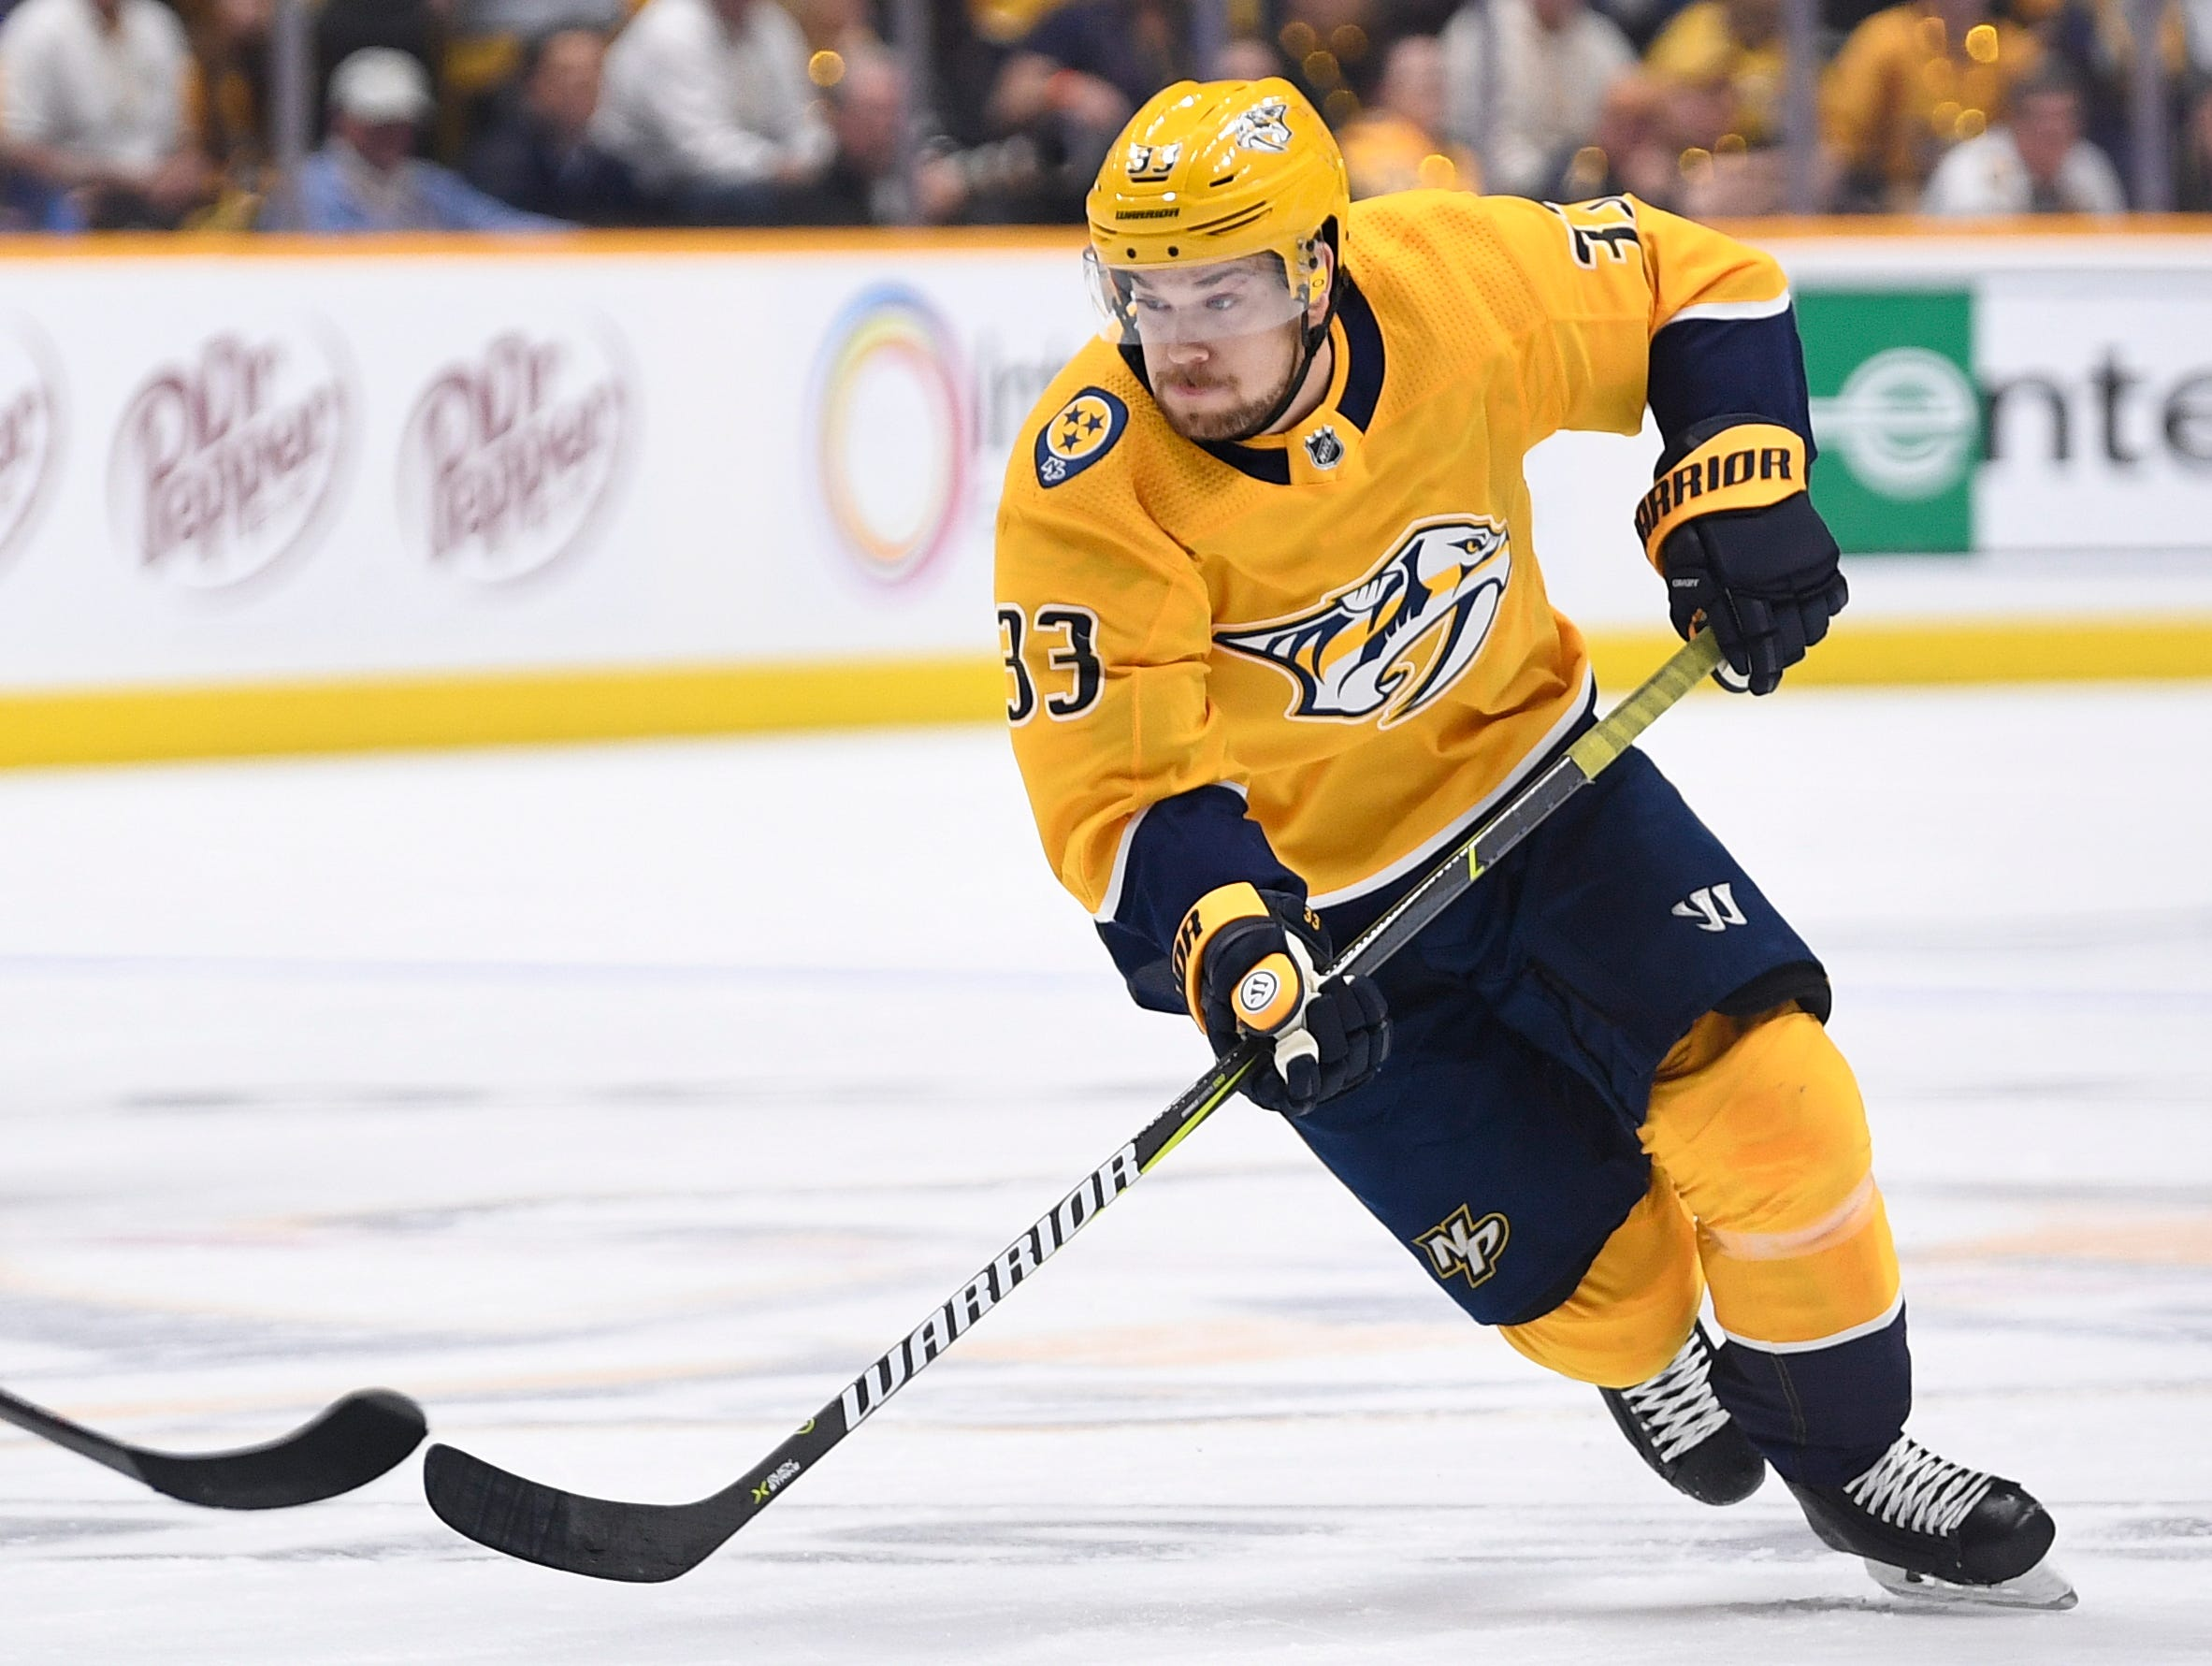 Nashville Predators right wing Viktor Arvidsson (33) moves the puck during the first period of the divisional semifinal game against the Dallas Stars at Bridgestone Arena in Nashville, Tenn., Saturday, April 13, 2019.